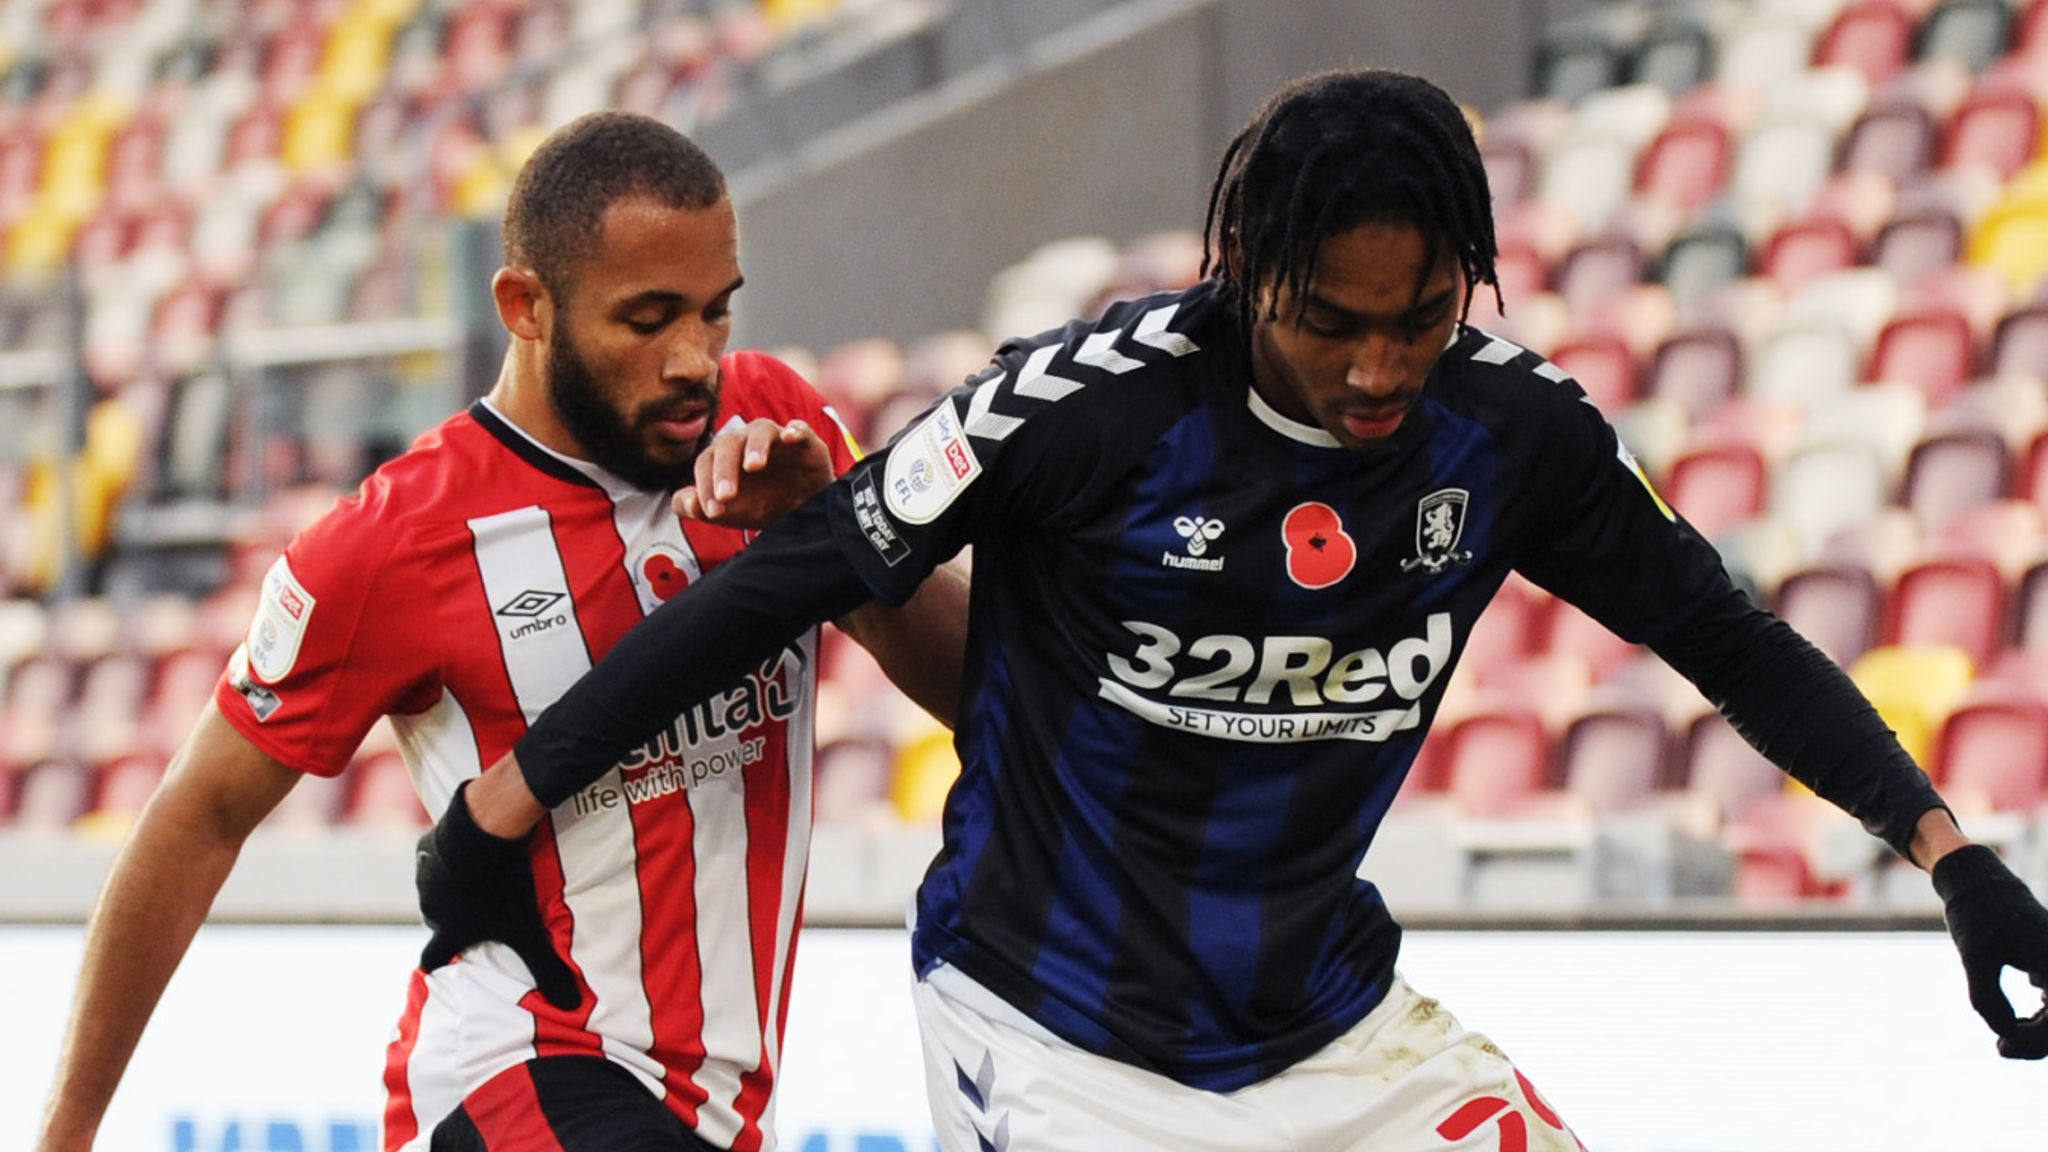 Brentford vs leyton orient betting odds investment company in rochester ny